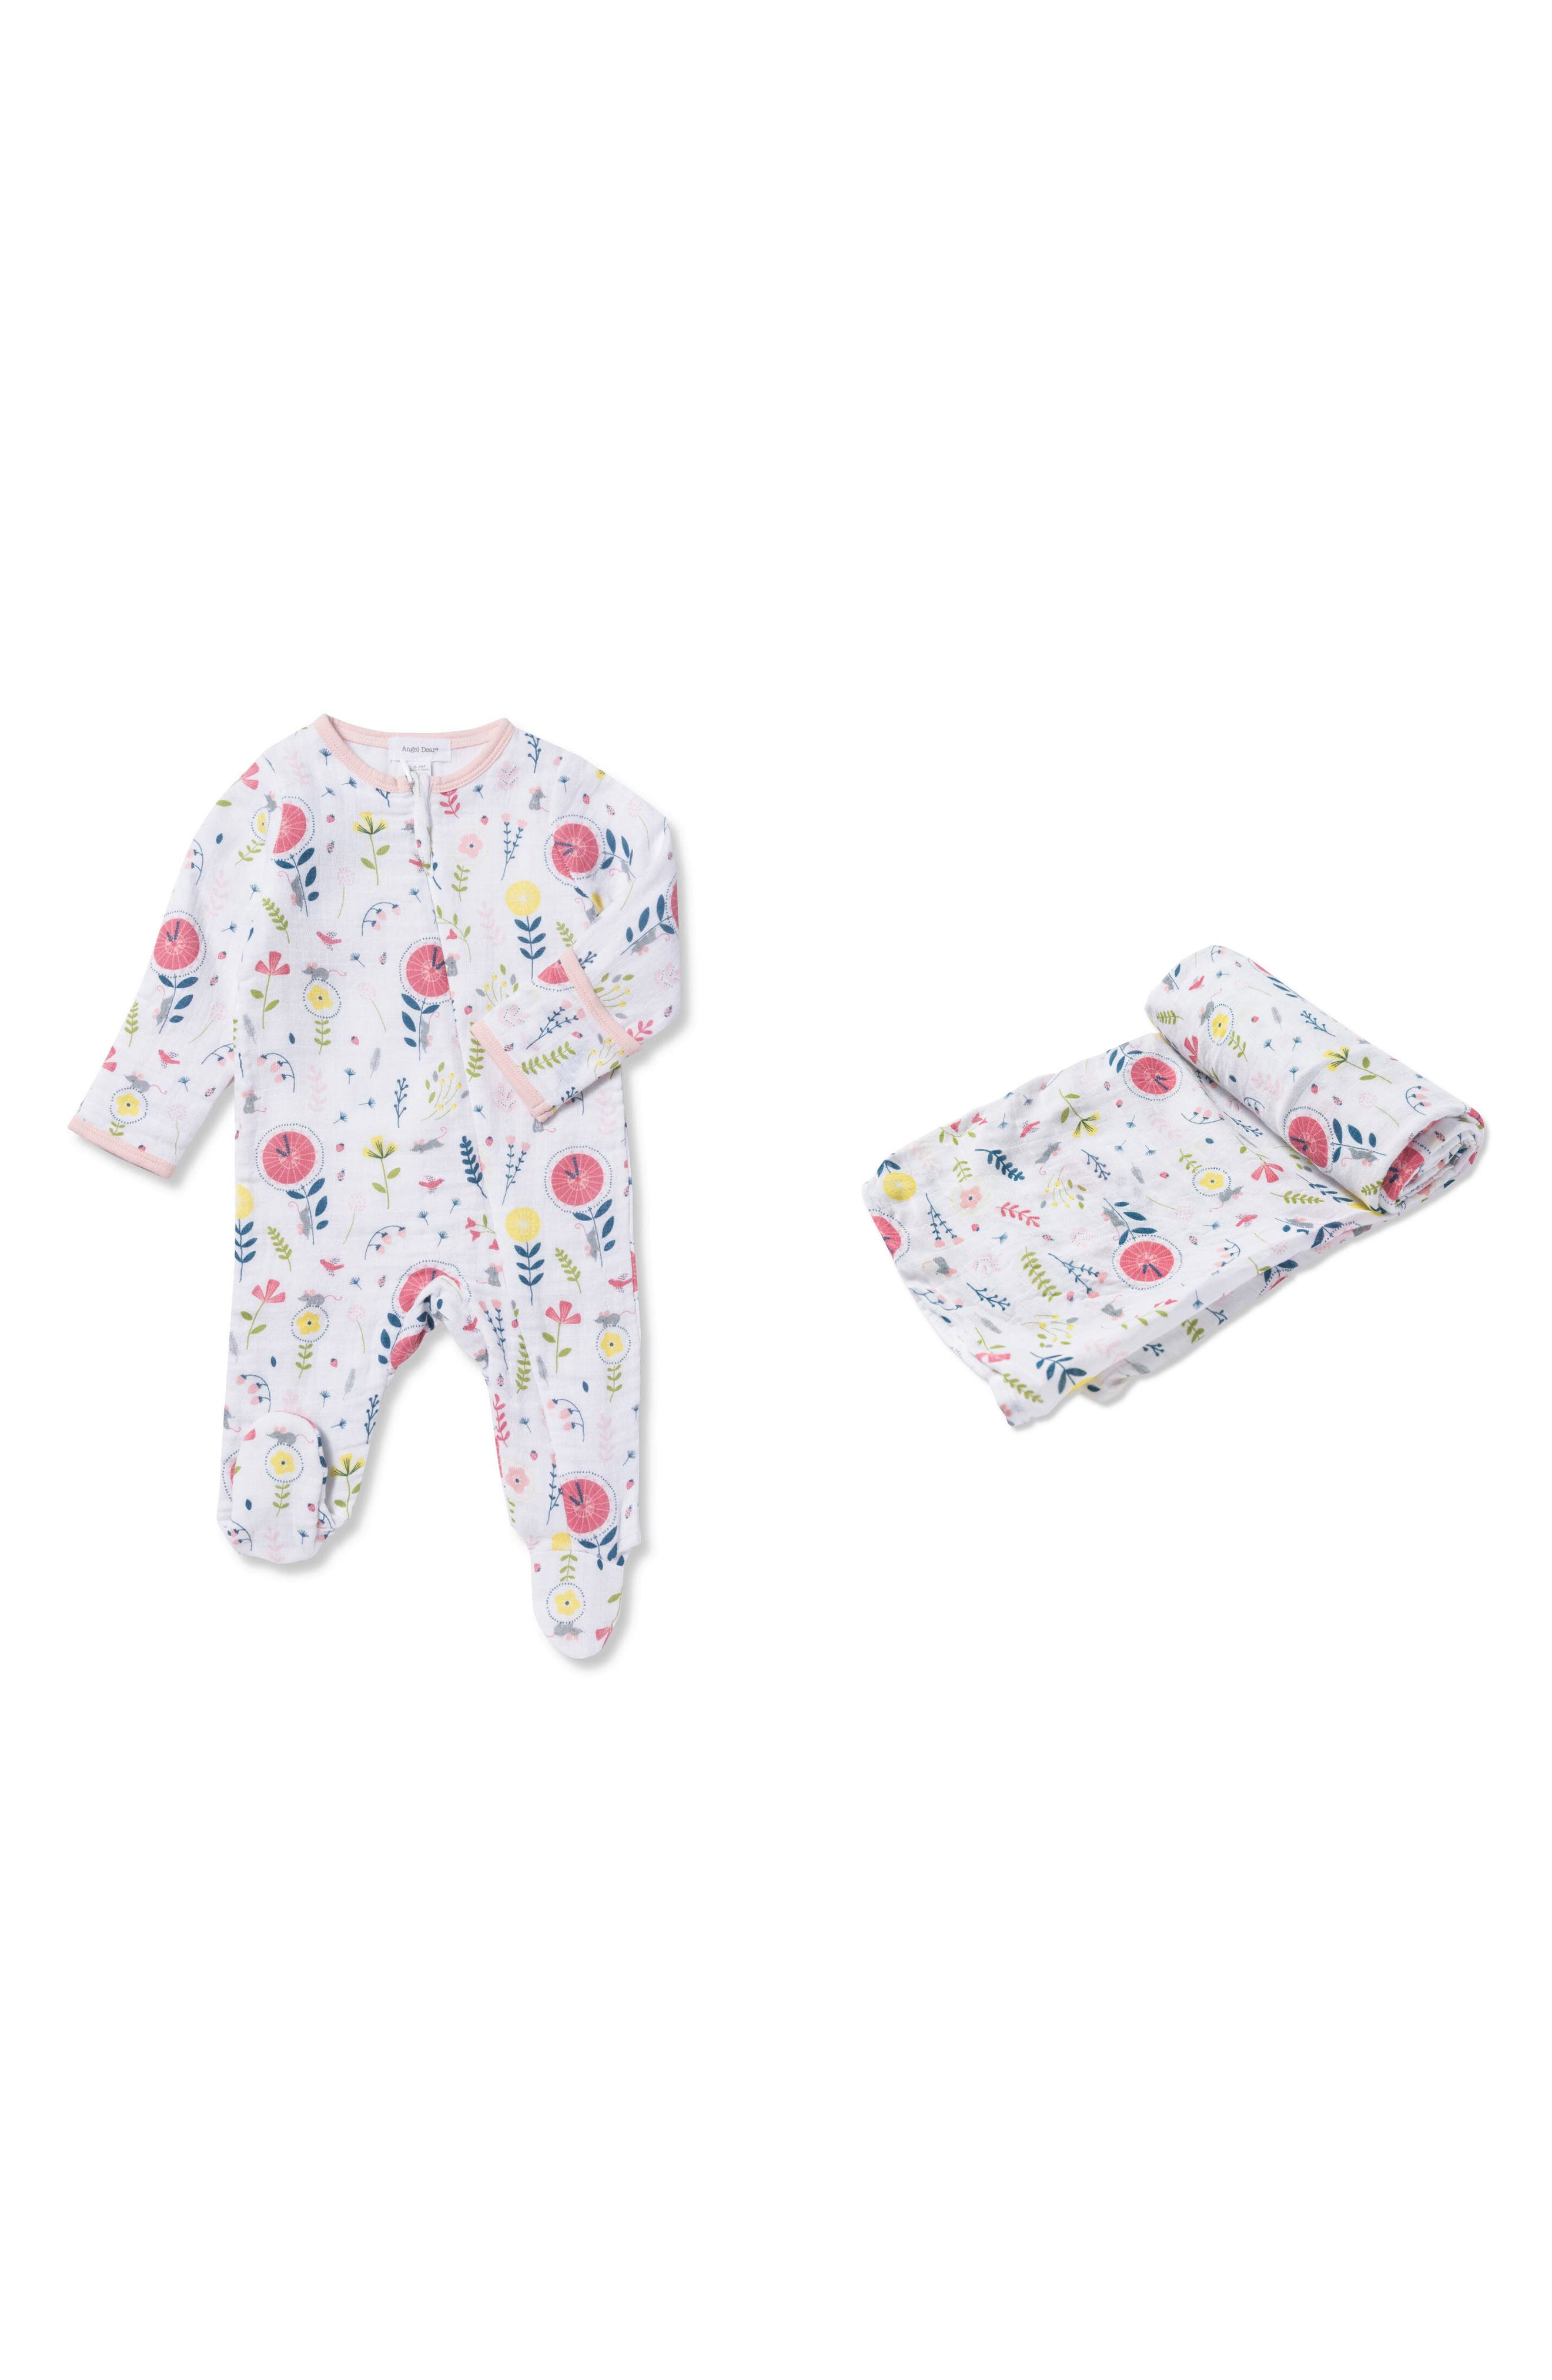 Hickory Dickory Dock Footie & Swaddle Blanket Set,                         Main,                         color, Multi